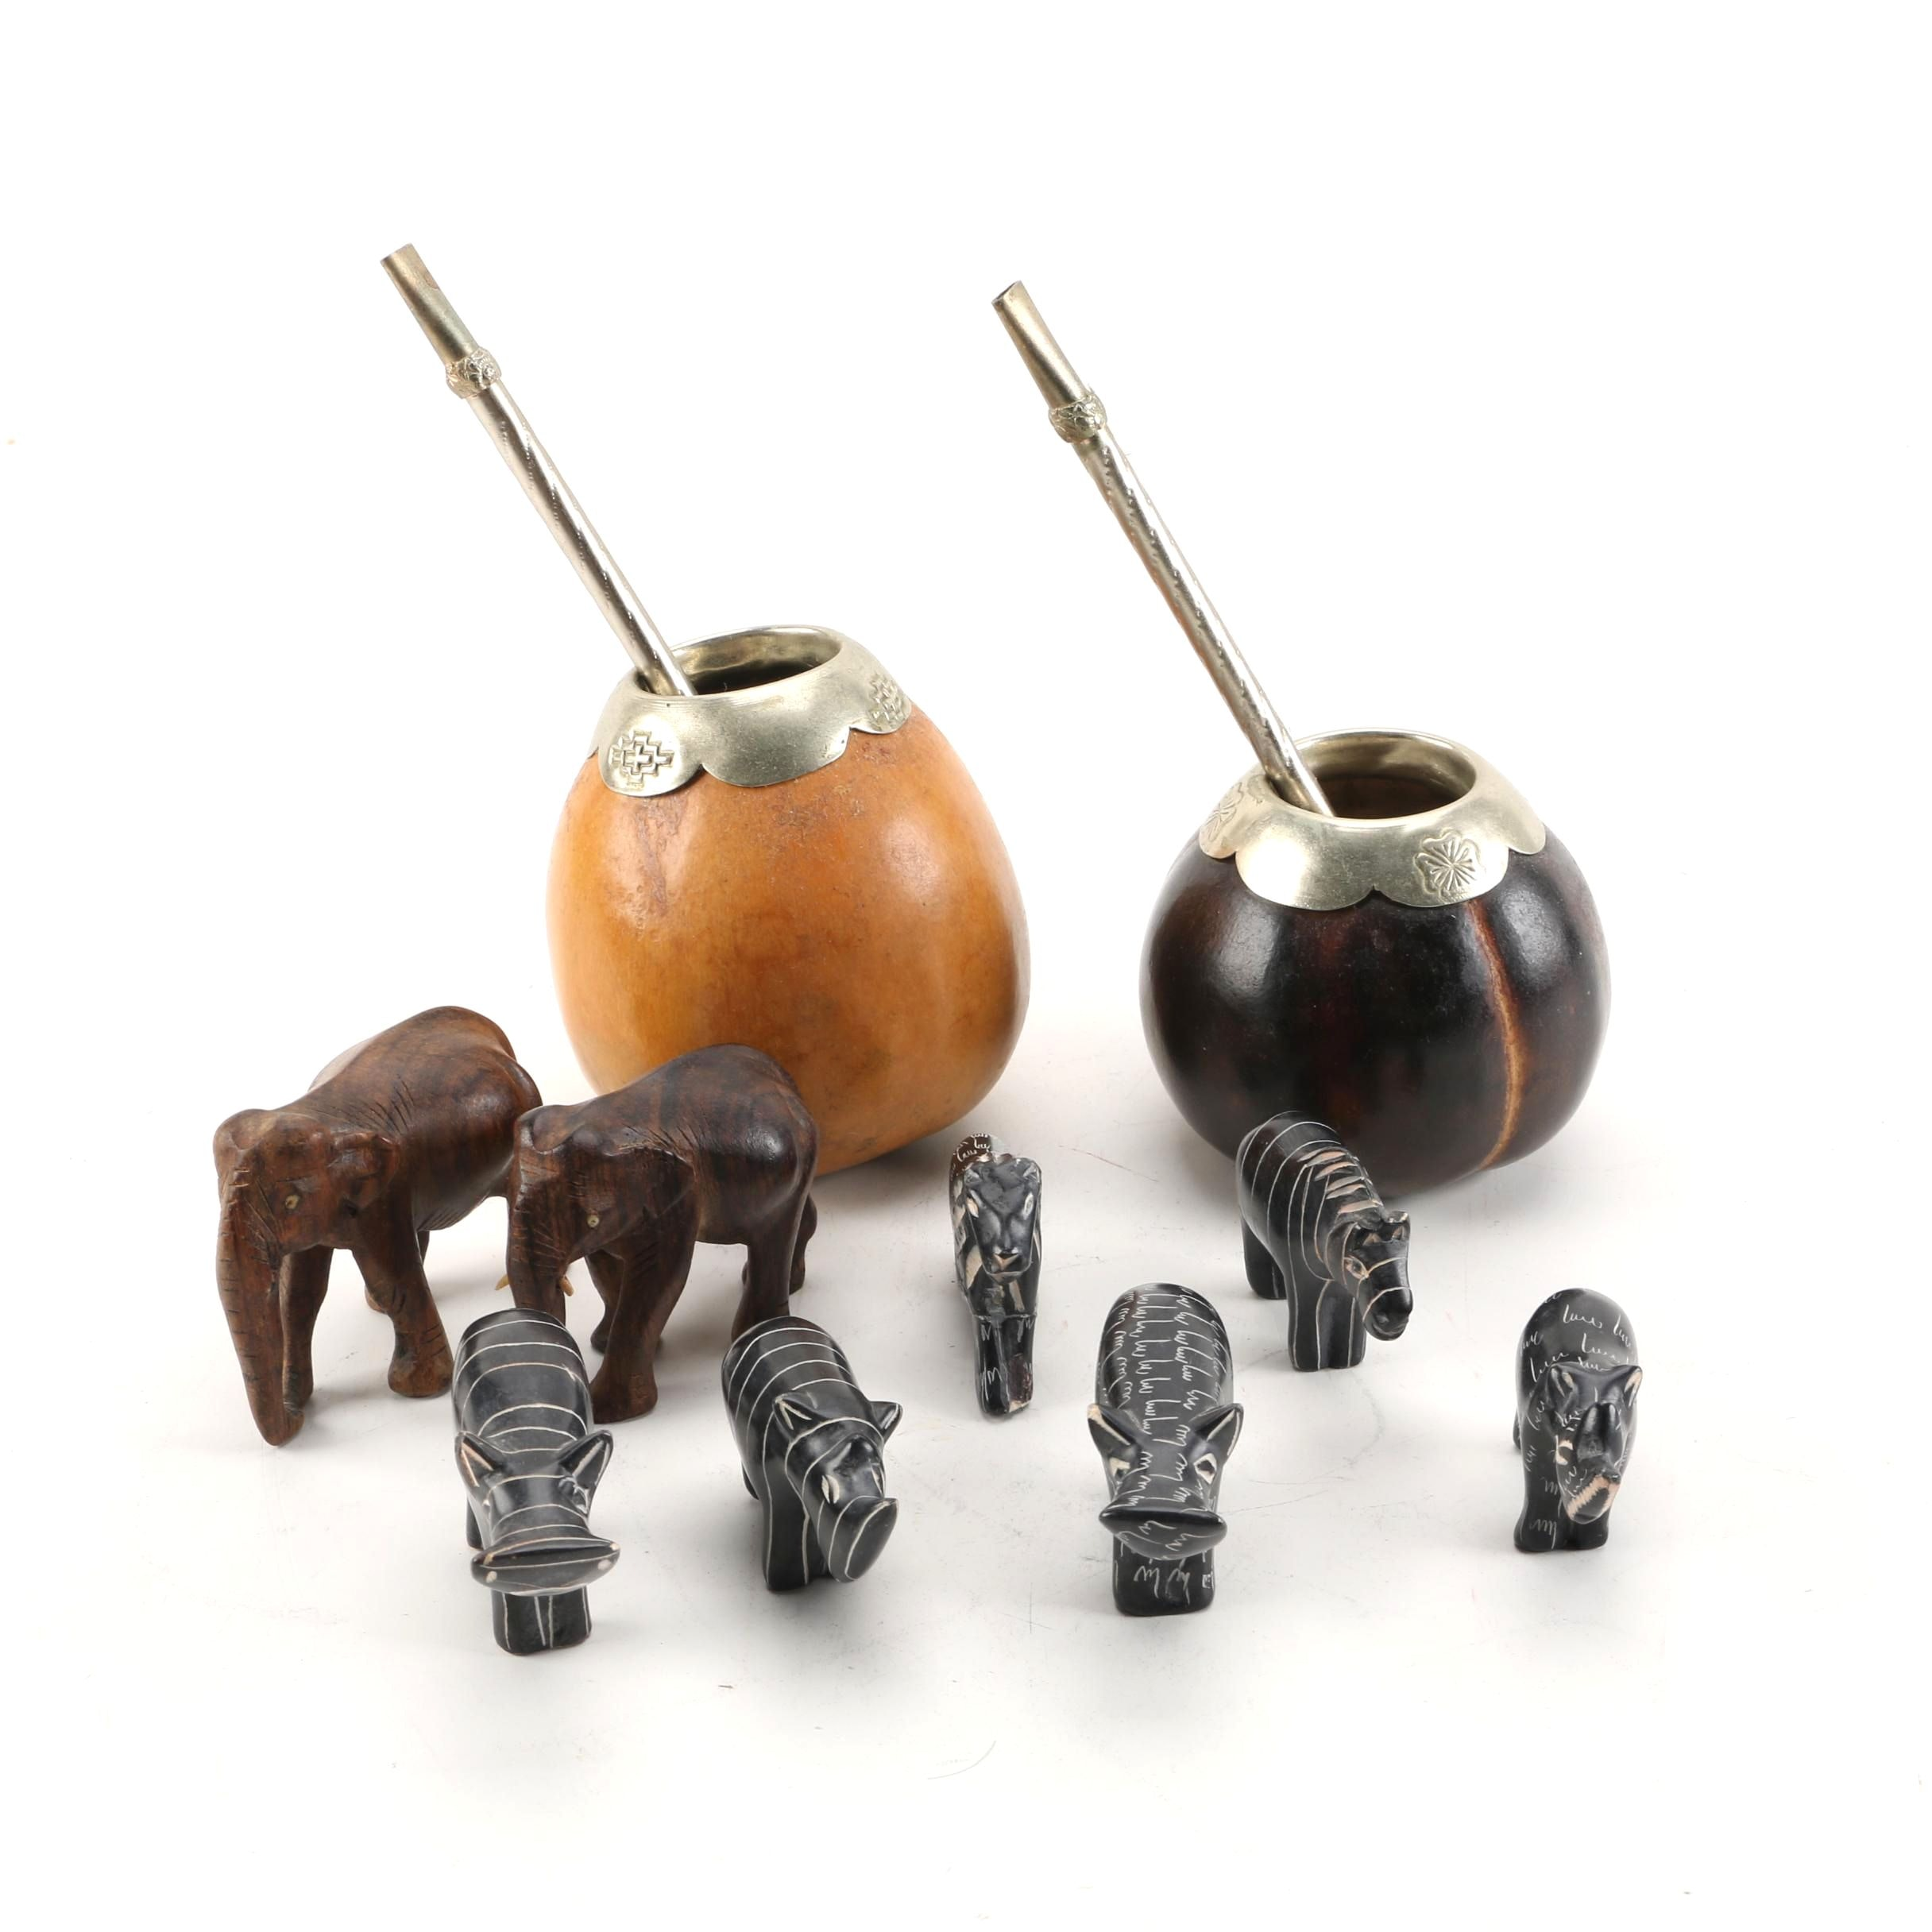 Argentinian Yerba Mate Gourd Cups with Straws and Carved Soapstone Figurines